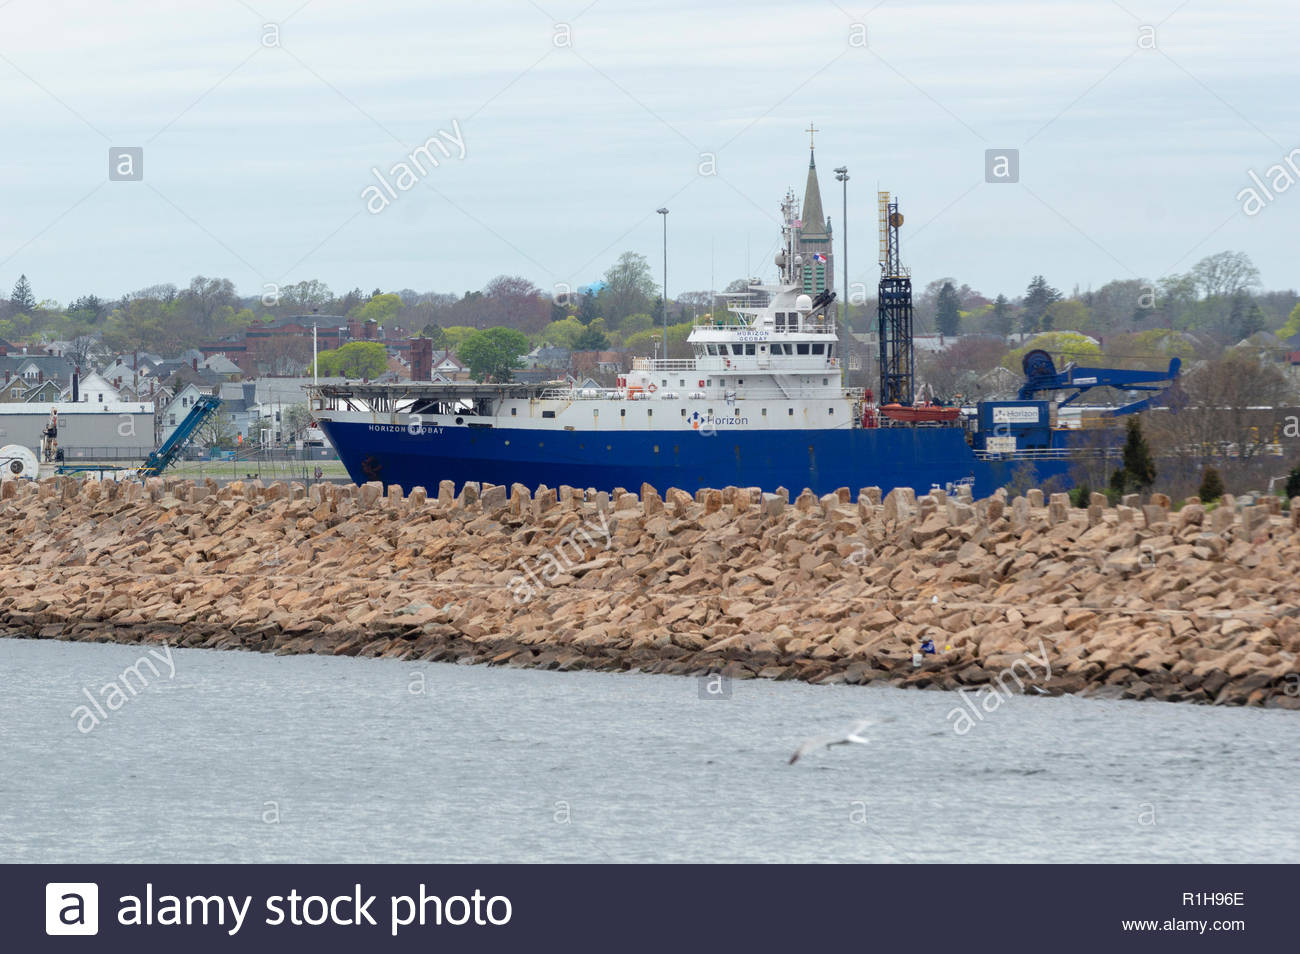 New Bedford, Massachusetts, USA - May 6, 2018: Geotechnical drilling ship Horizon Geobay moored behind hurricane barrier in New Bedford - Stock Image